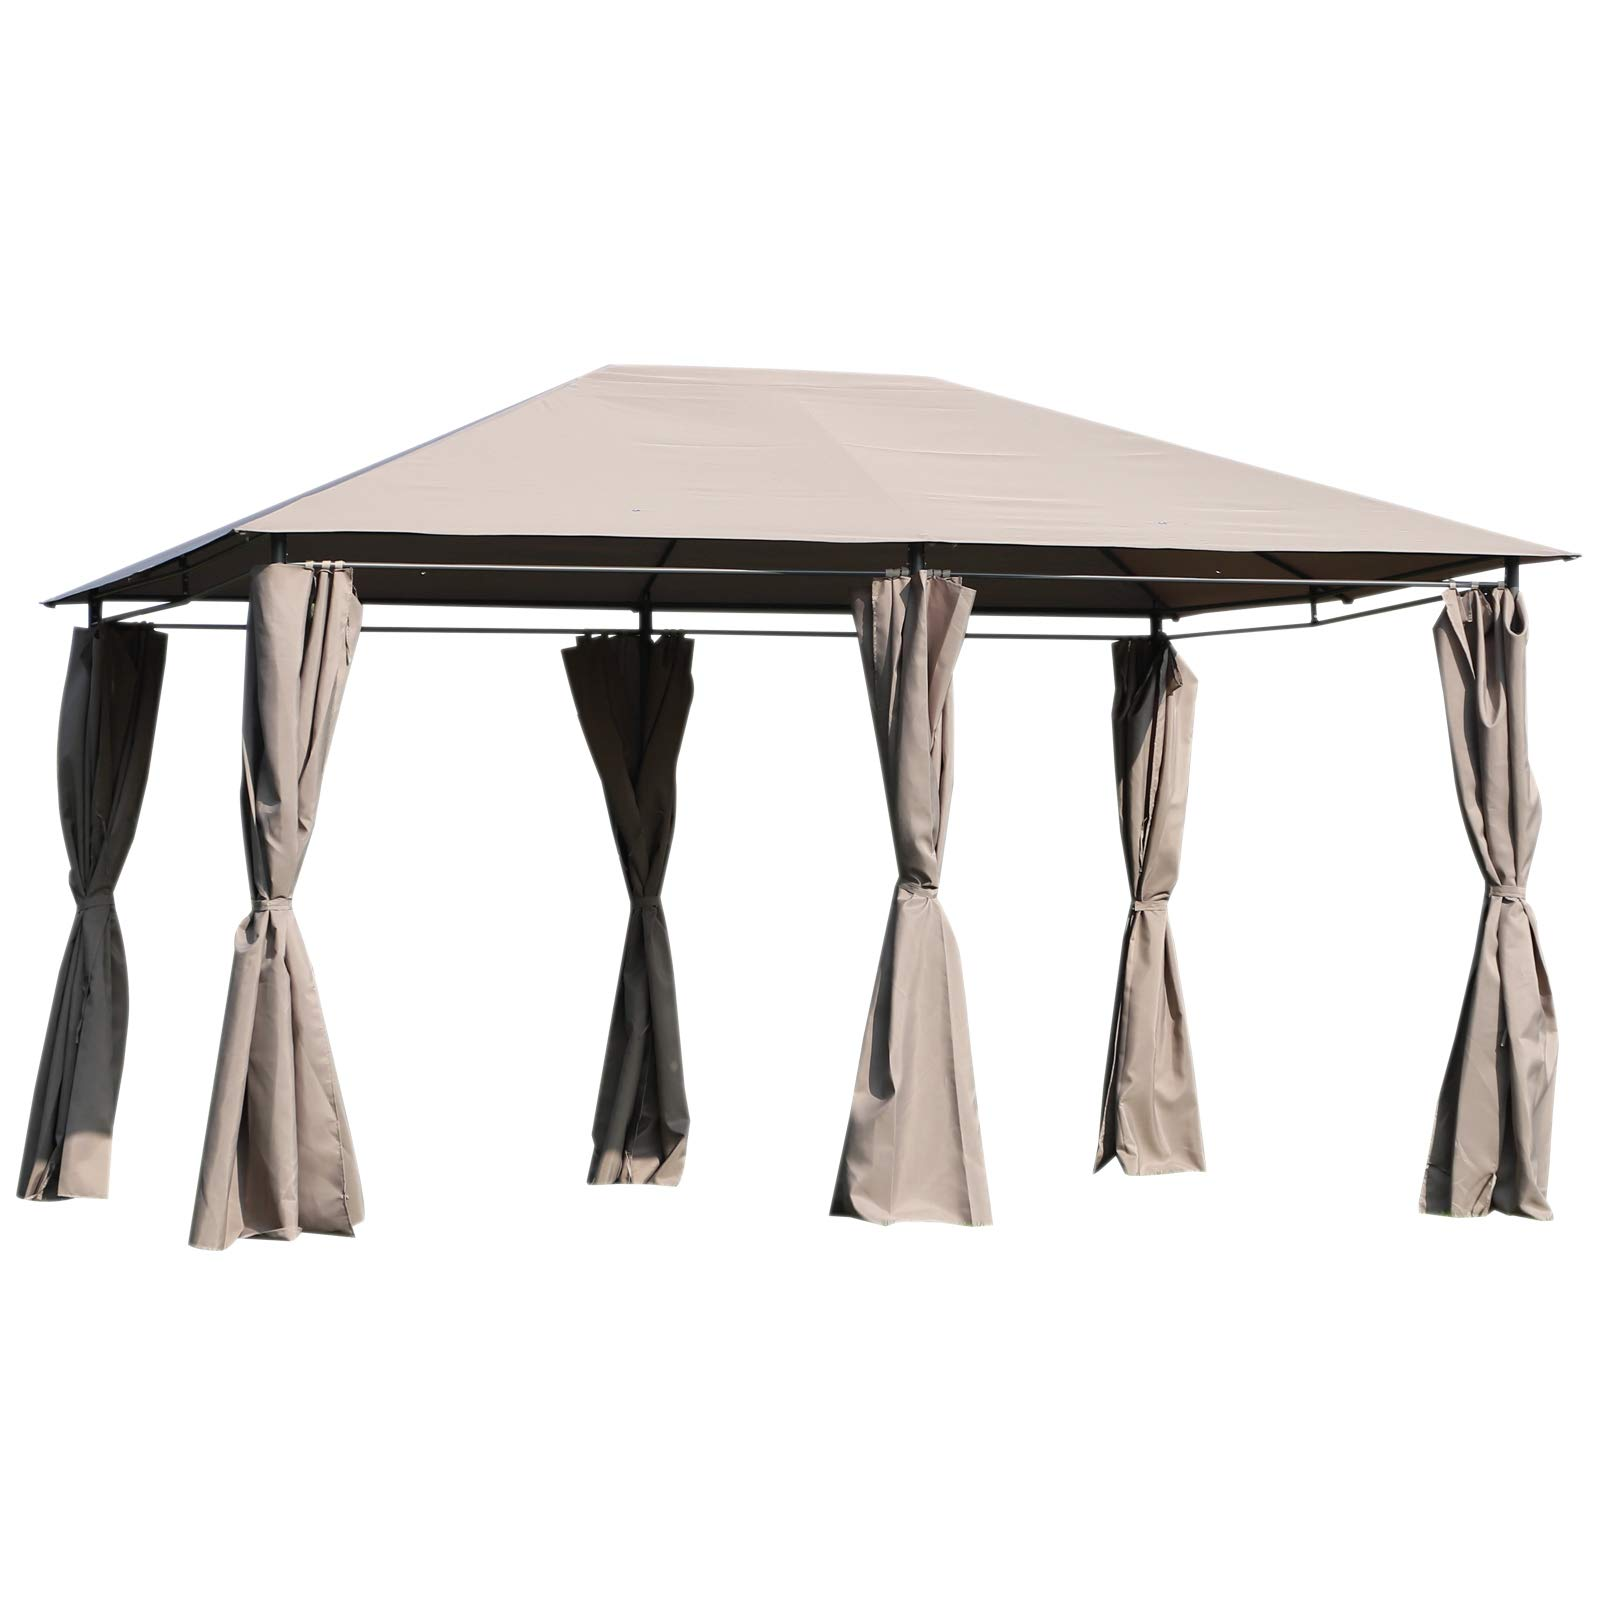 Outsunny 13' x 10' Steel Outdoor Patio Gazebo Pavilion Canopy Tent with Curtains - Khaki